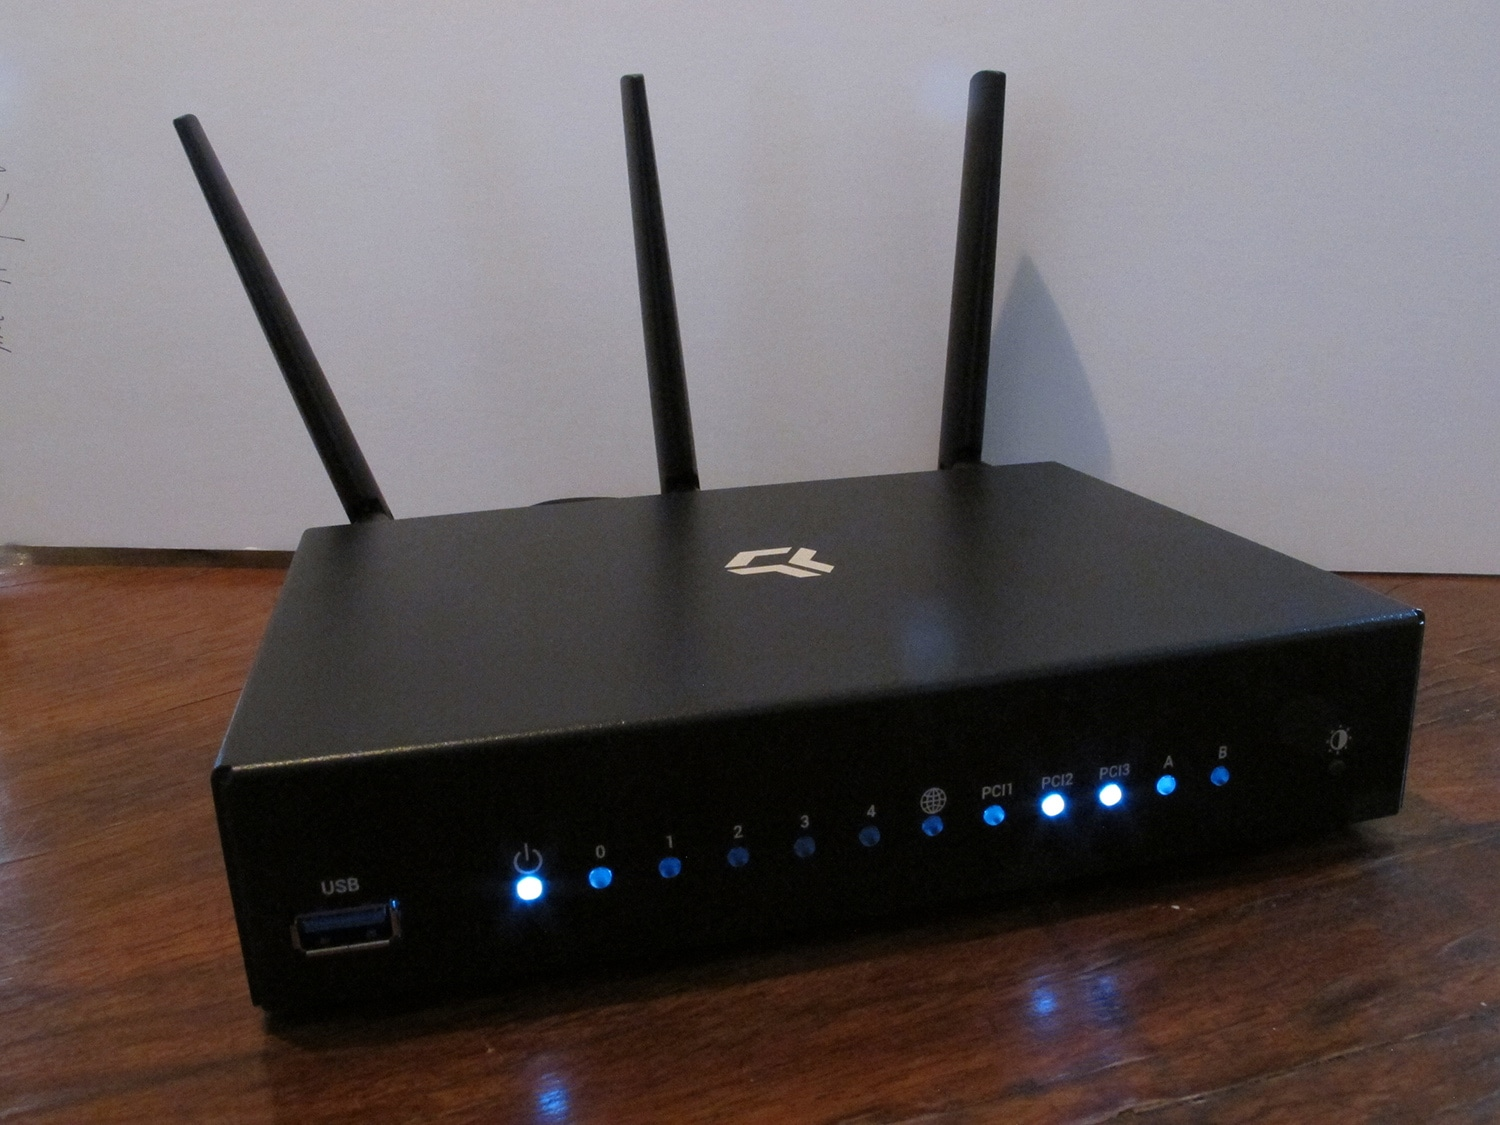 5 Best Routers for OpenWRT LEDE Firmware & OpenVPN - [2019]